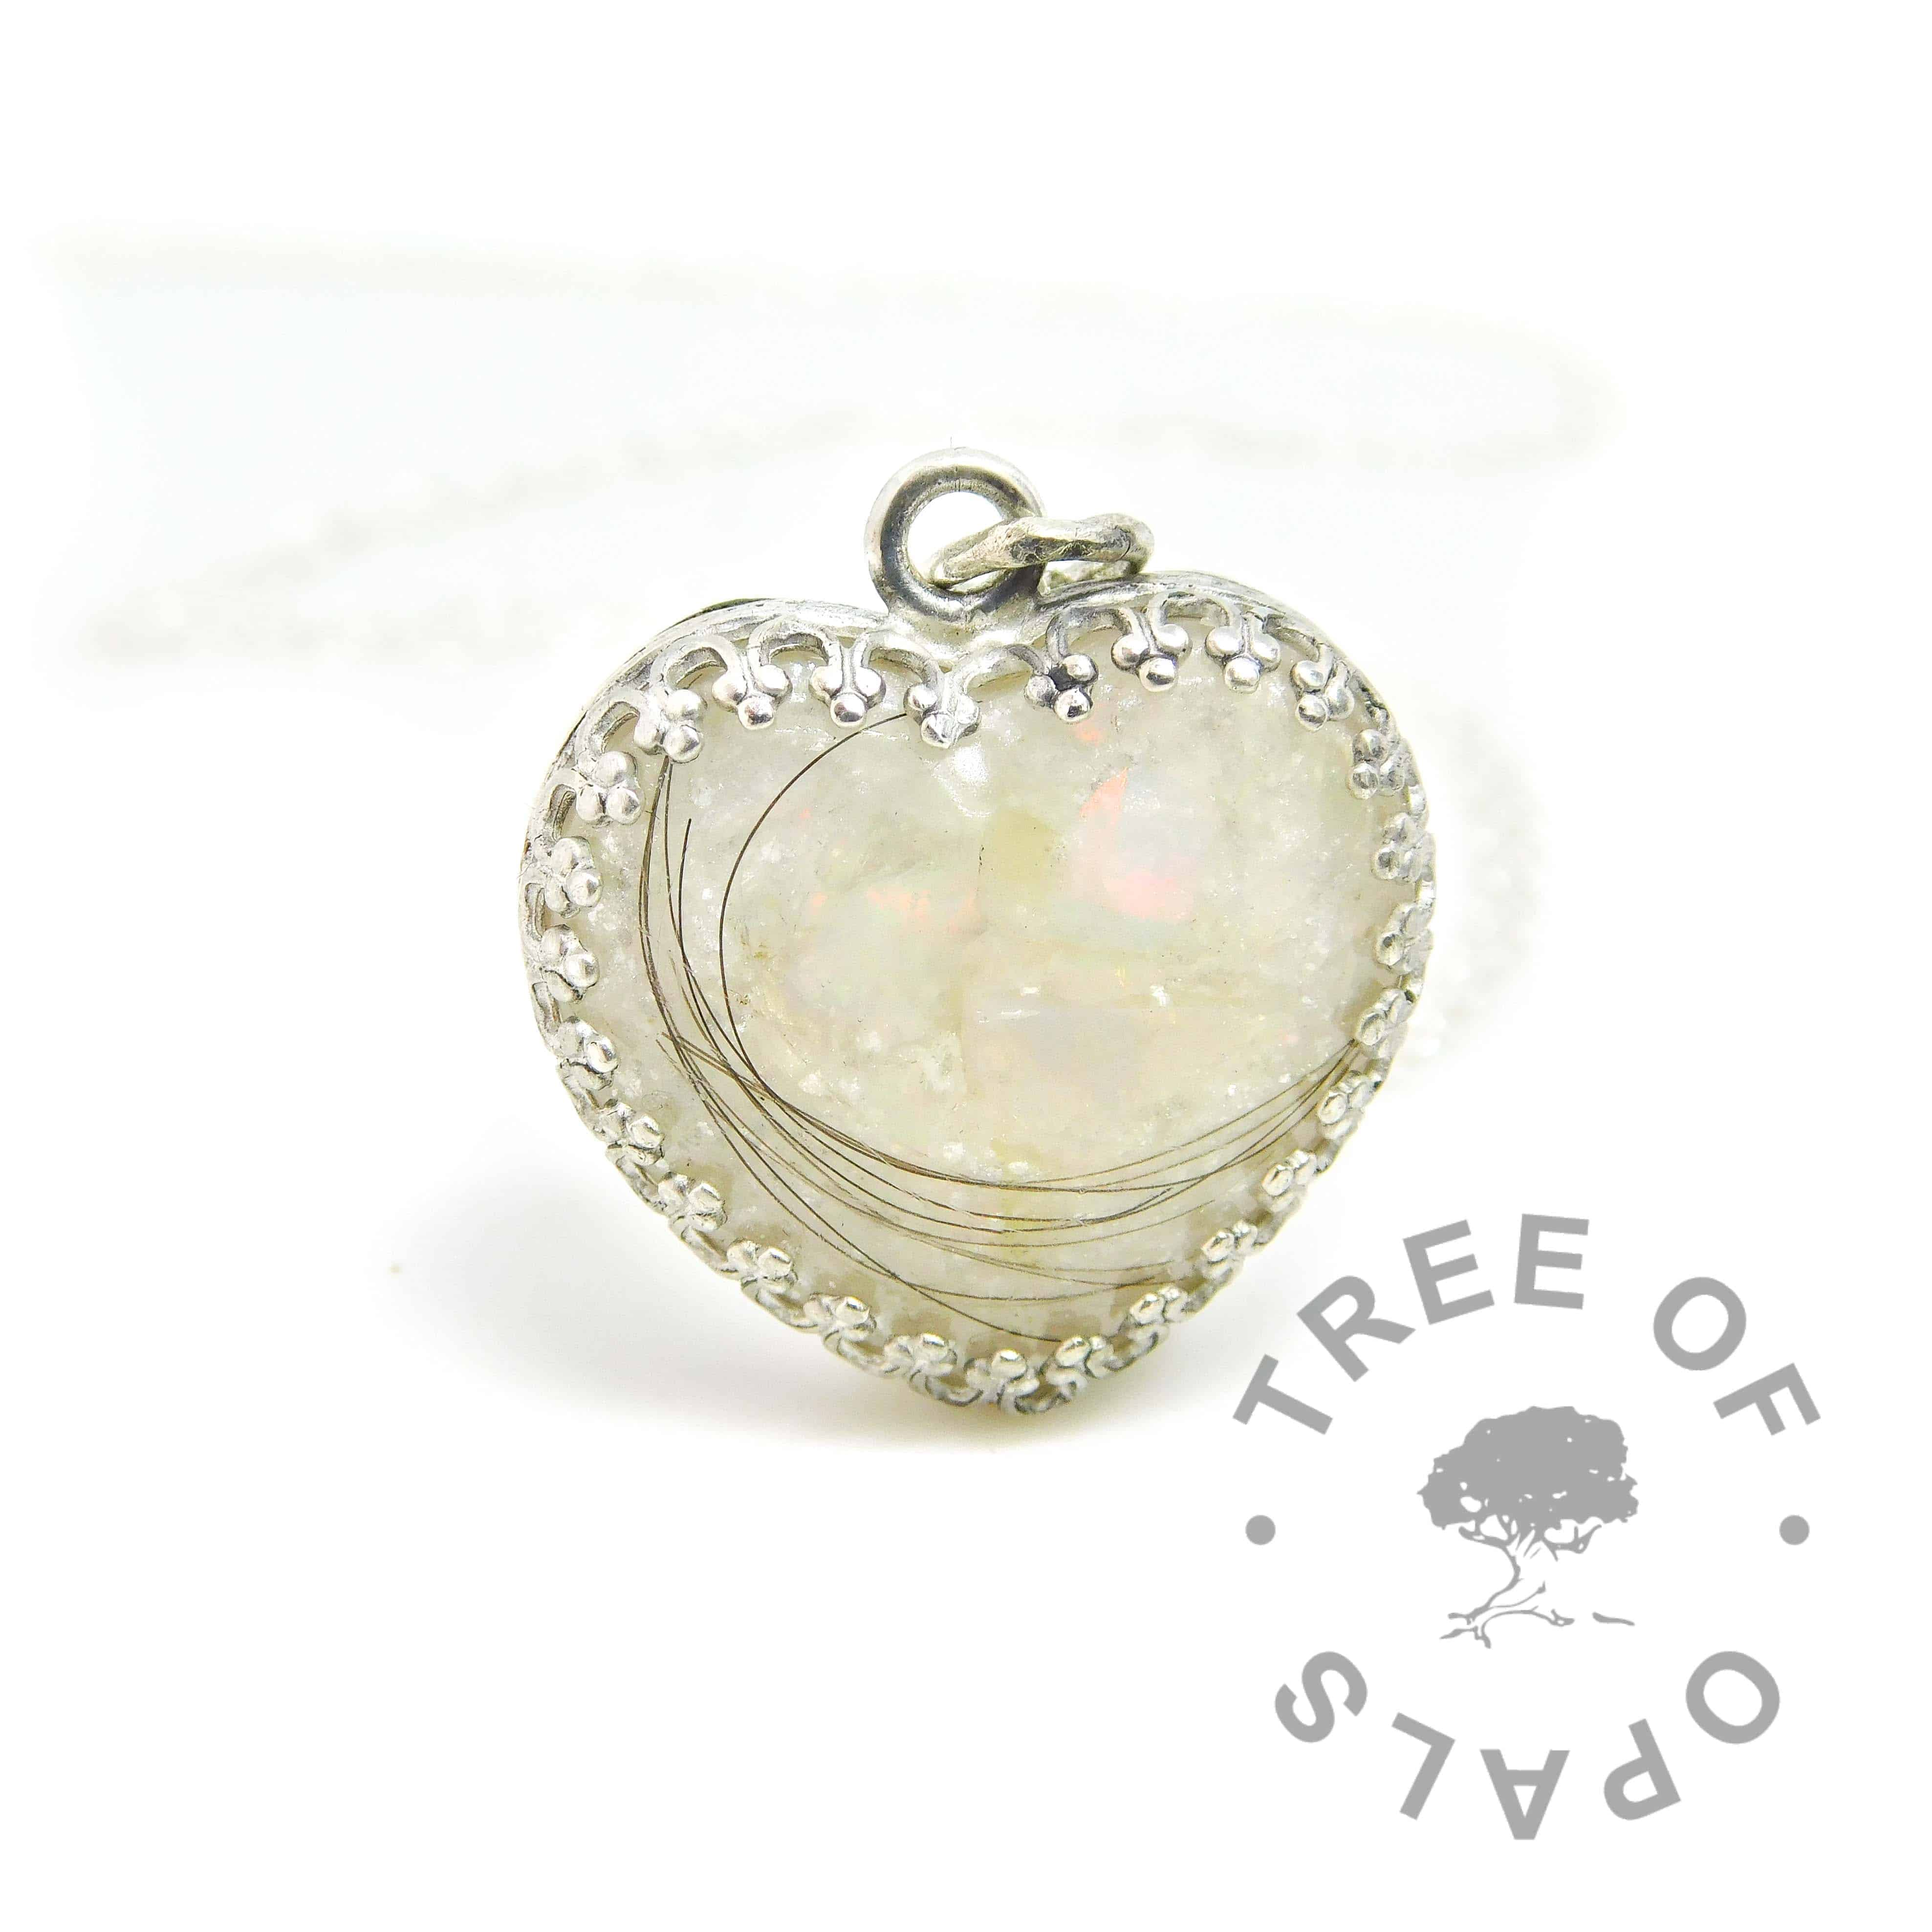 Lock of hair heart necklace with unicorn white resin sparkle mix, rough natural opal slices October birthstone. Solid sterling silver 20mm crown point heart setting (925 stamped on the back). Lightweight classic necklace chain included. Watermarked copyright Tree of Opals memorial jewellery image